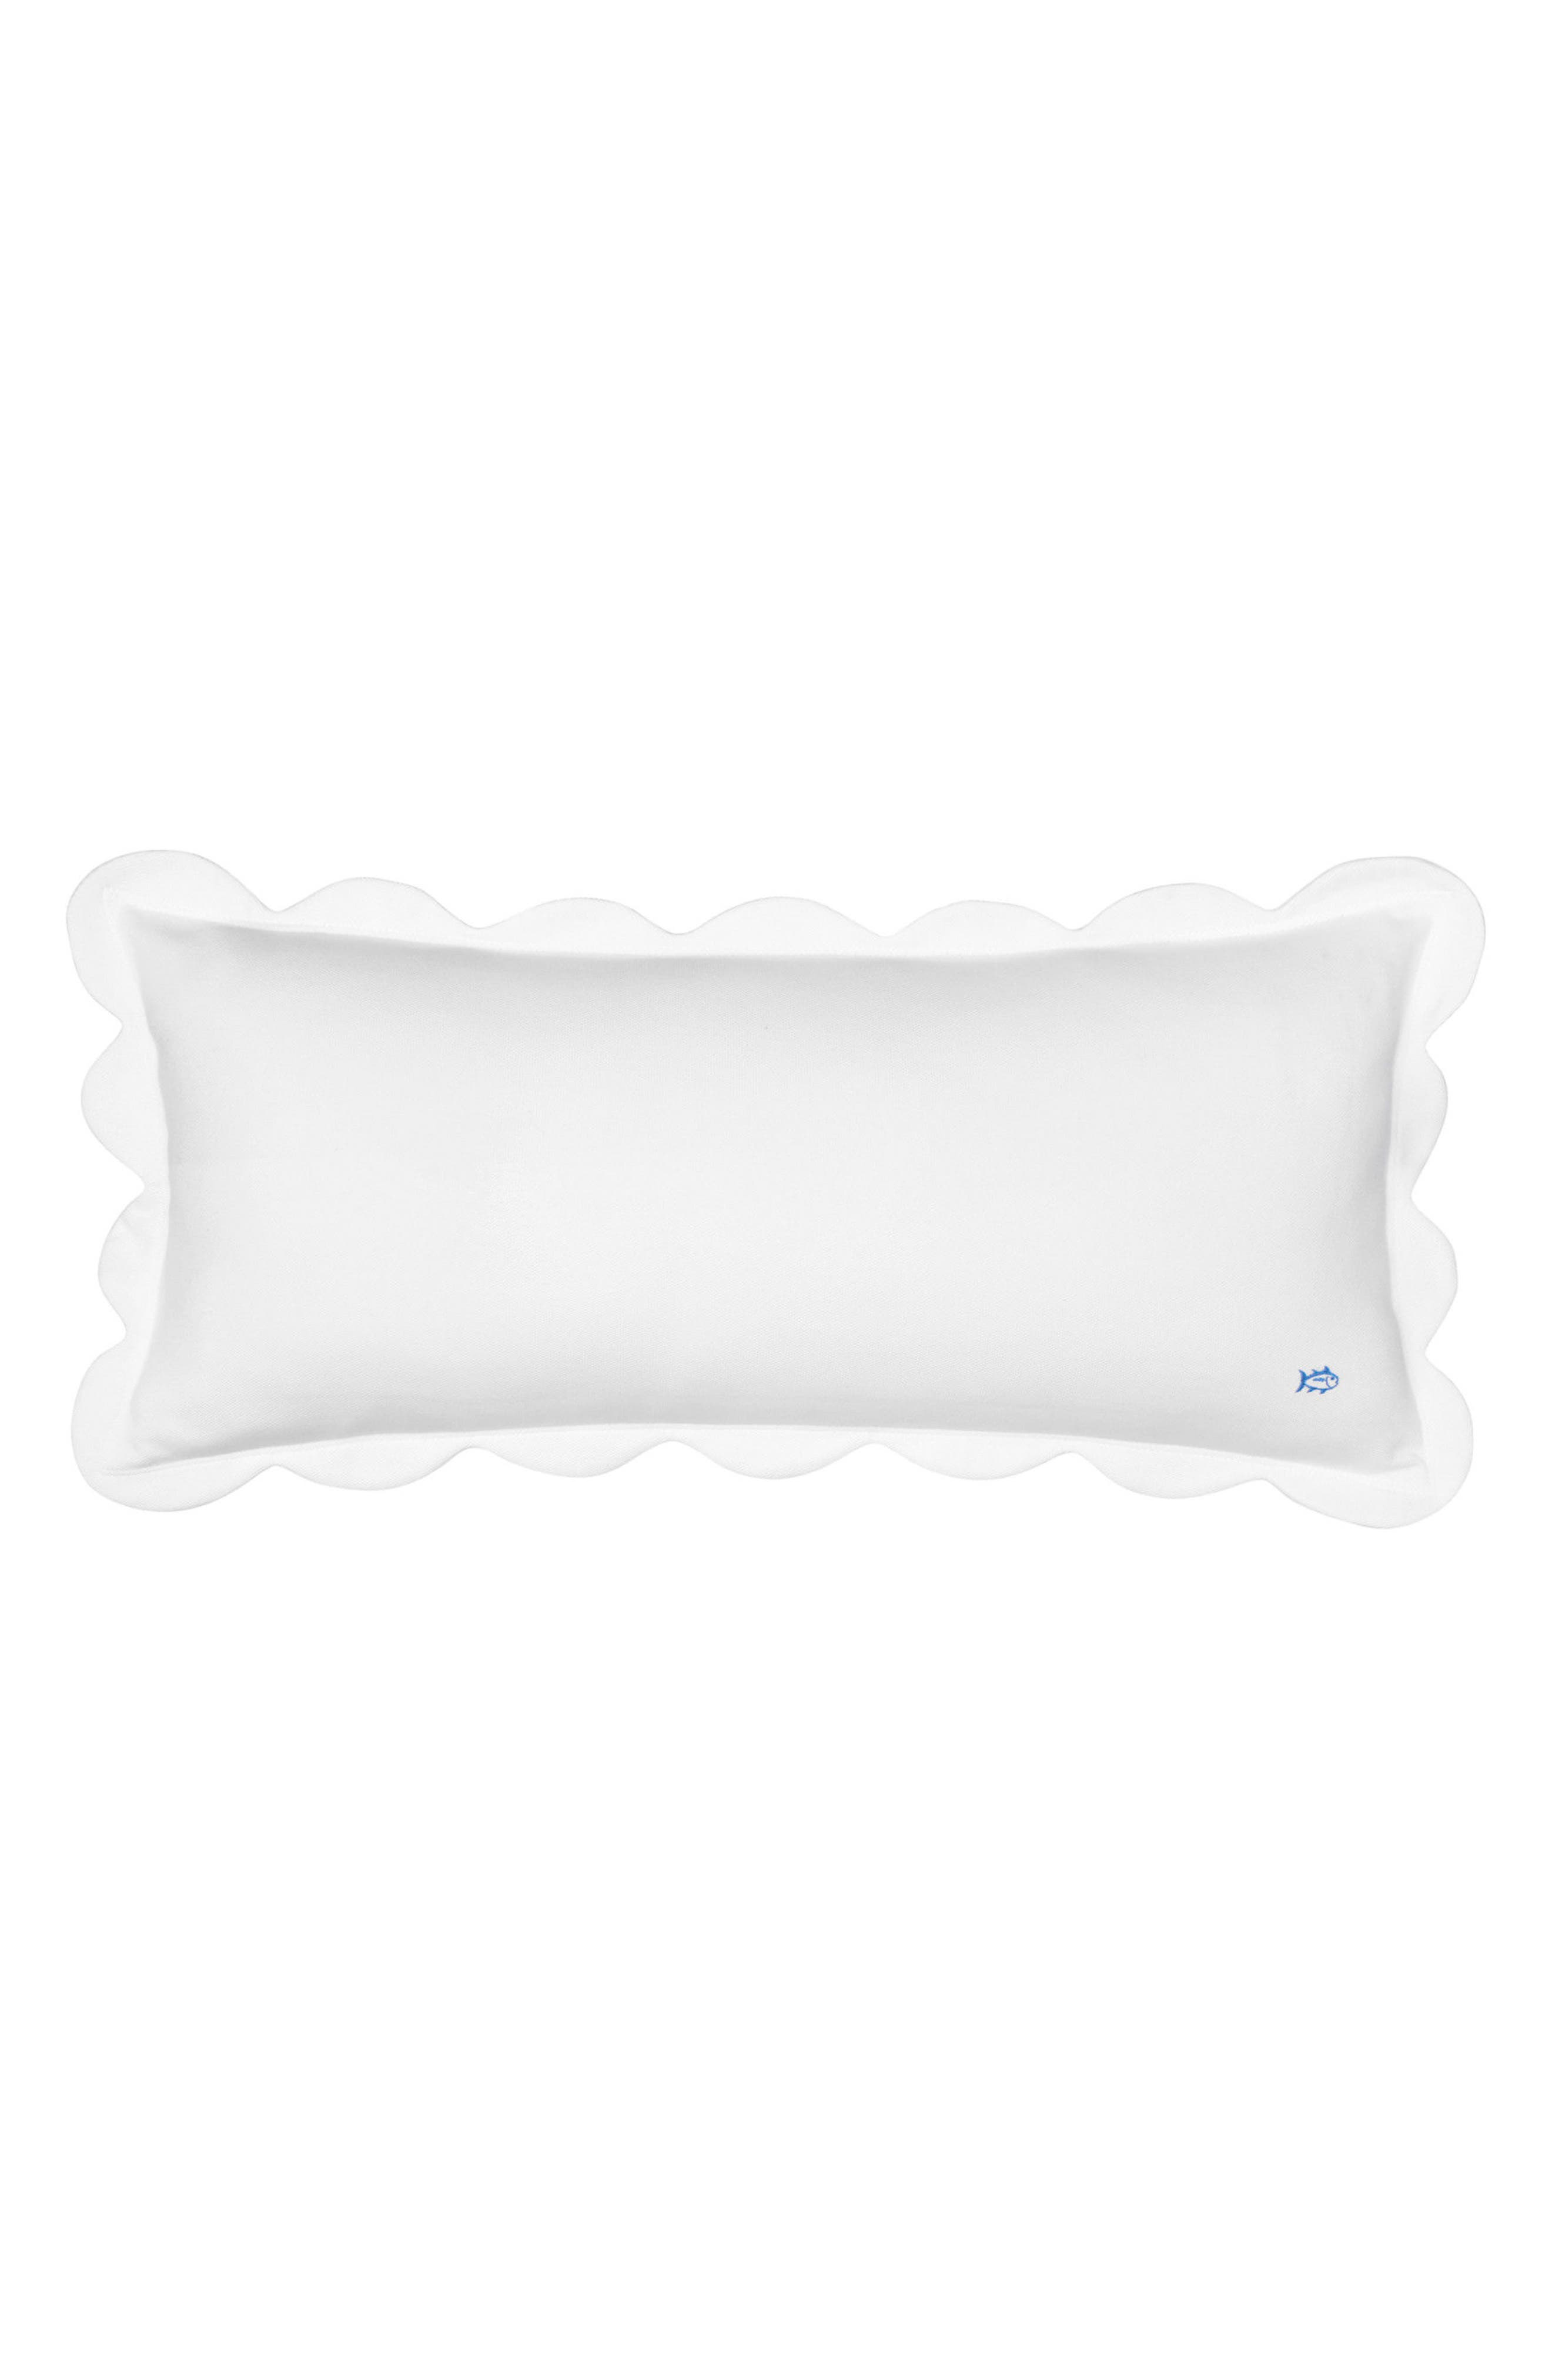 Sailgate Scalloped Accent Pillow,                         Main,                         color, White